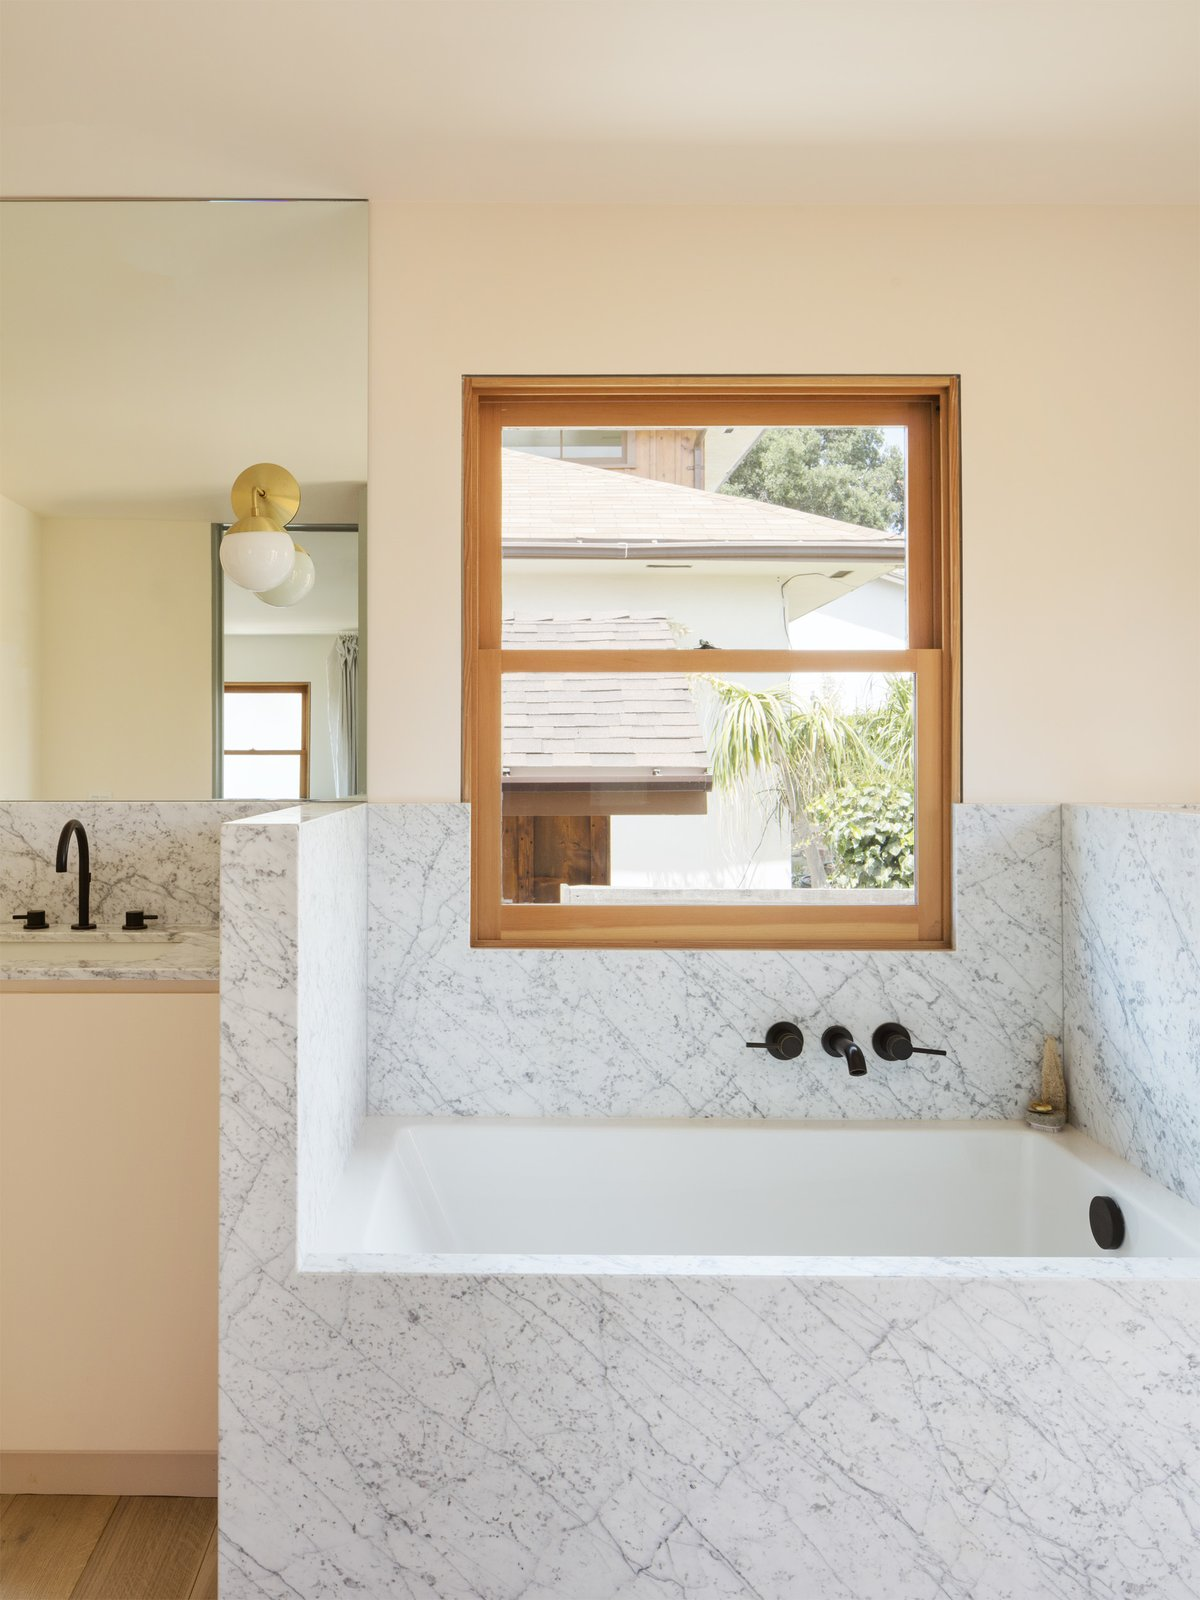 Bath Room, Marble Counter, Soaking Tub, Light Hardwood Floor, Undermount Sink, and Wall Lighting  Best Photos from Grids and Colors Inspire the Renovation of a Graphic Designer's Pink L.A. Bungalow